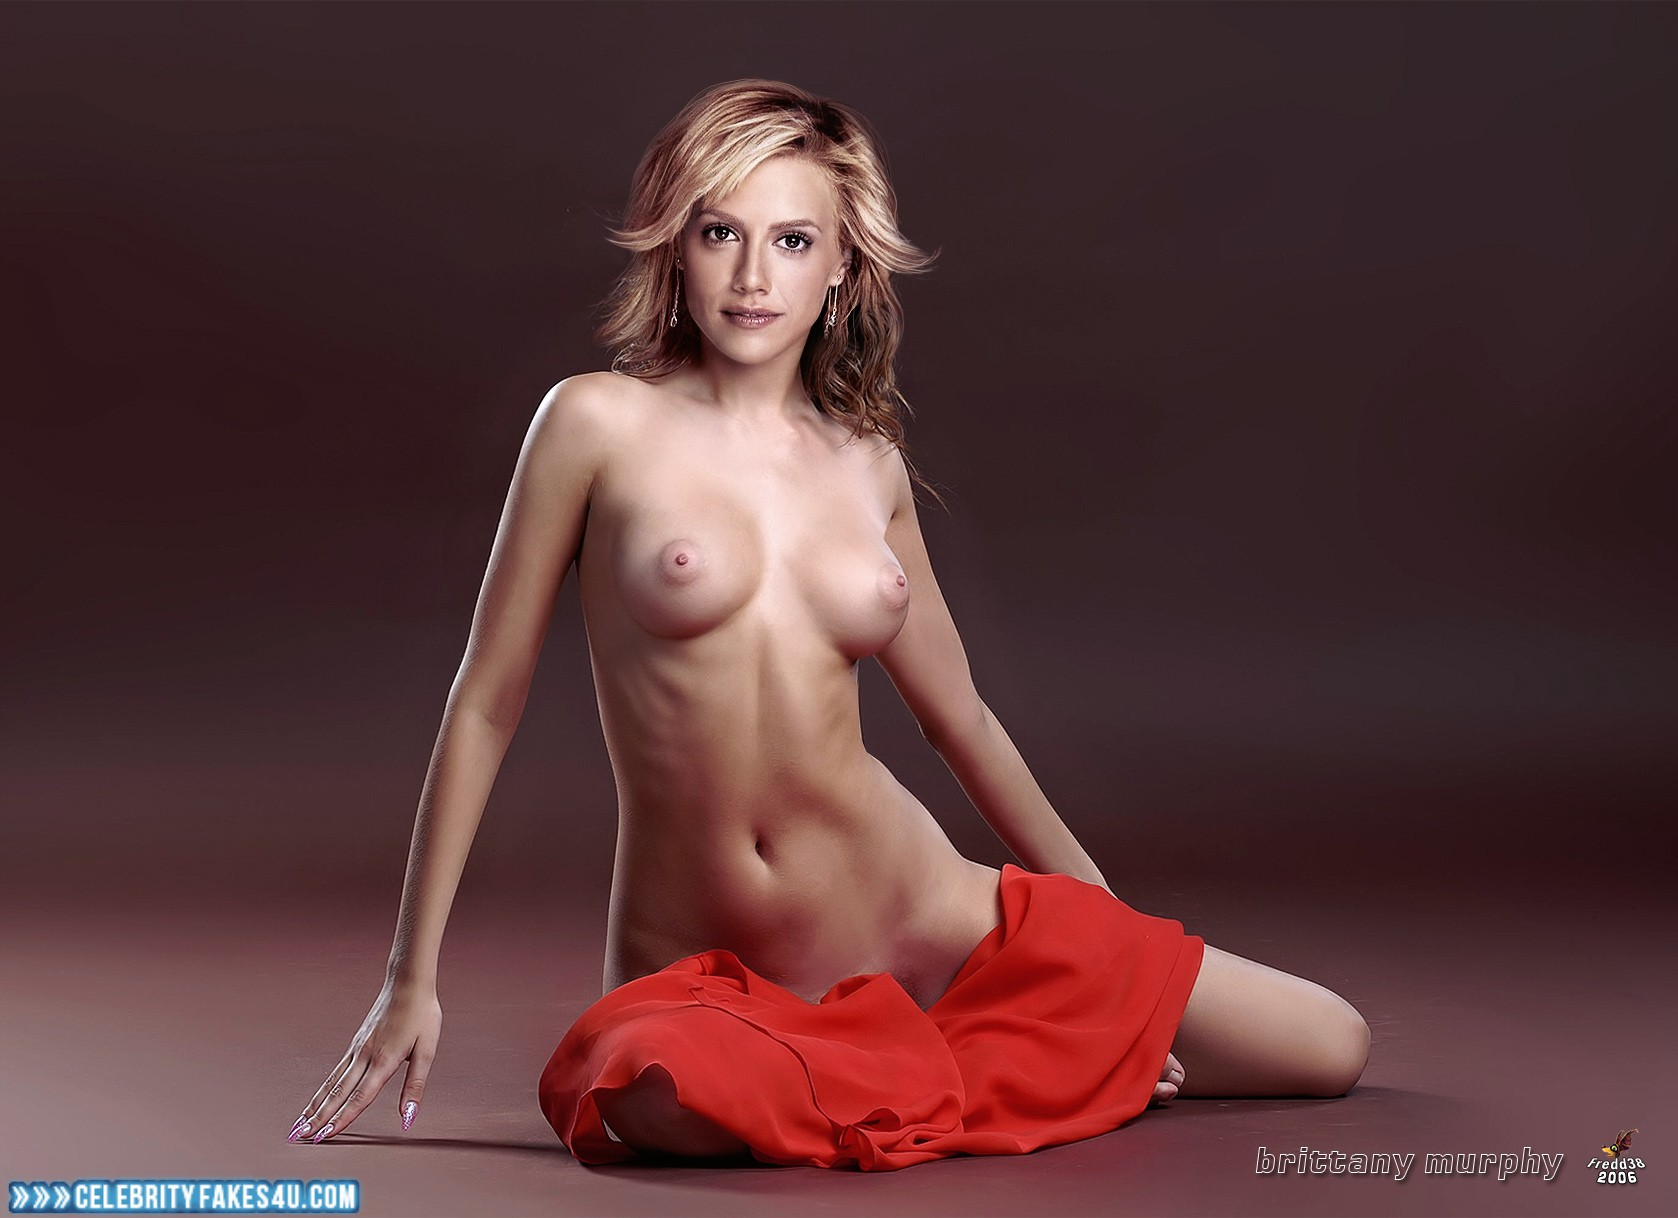 Remarkable, brittany murphy fakes will